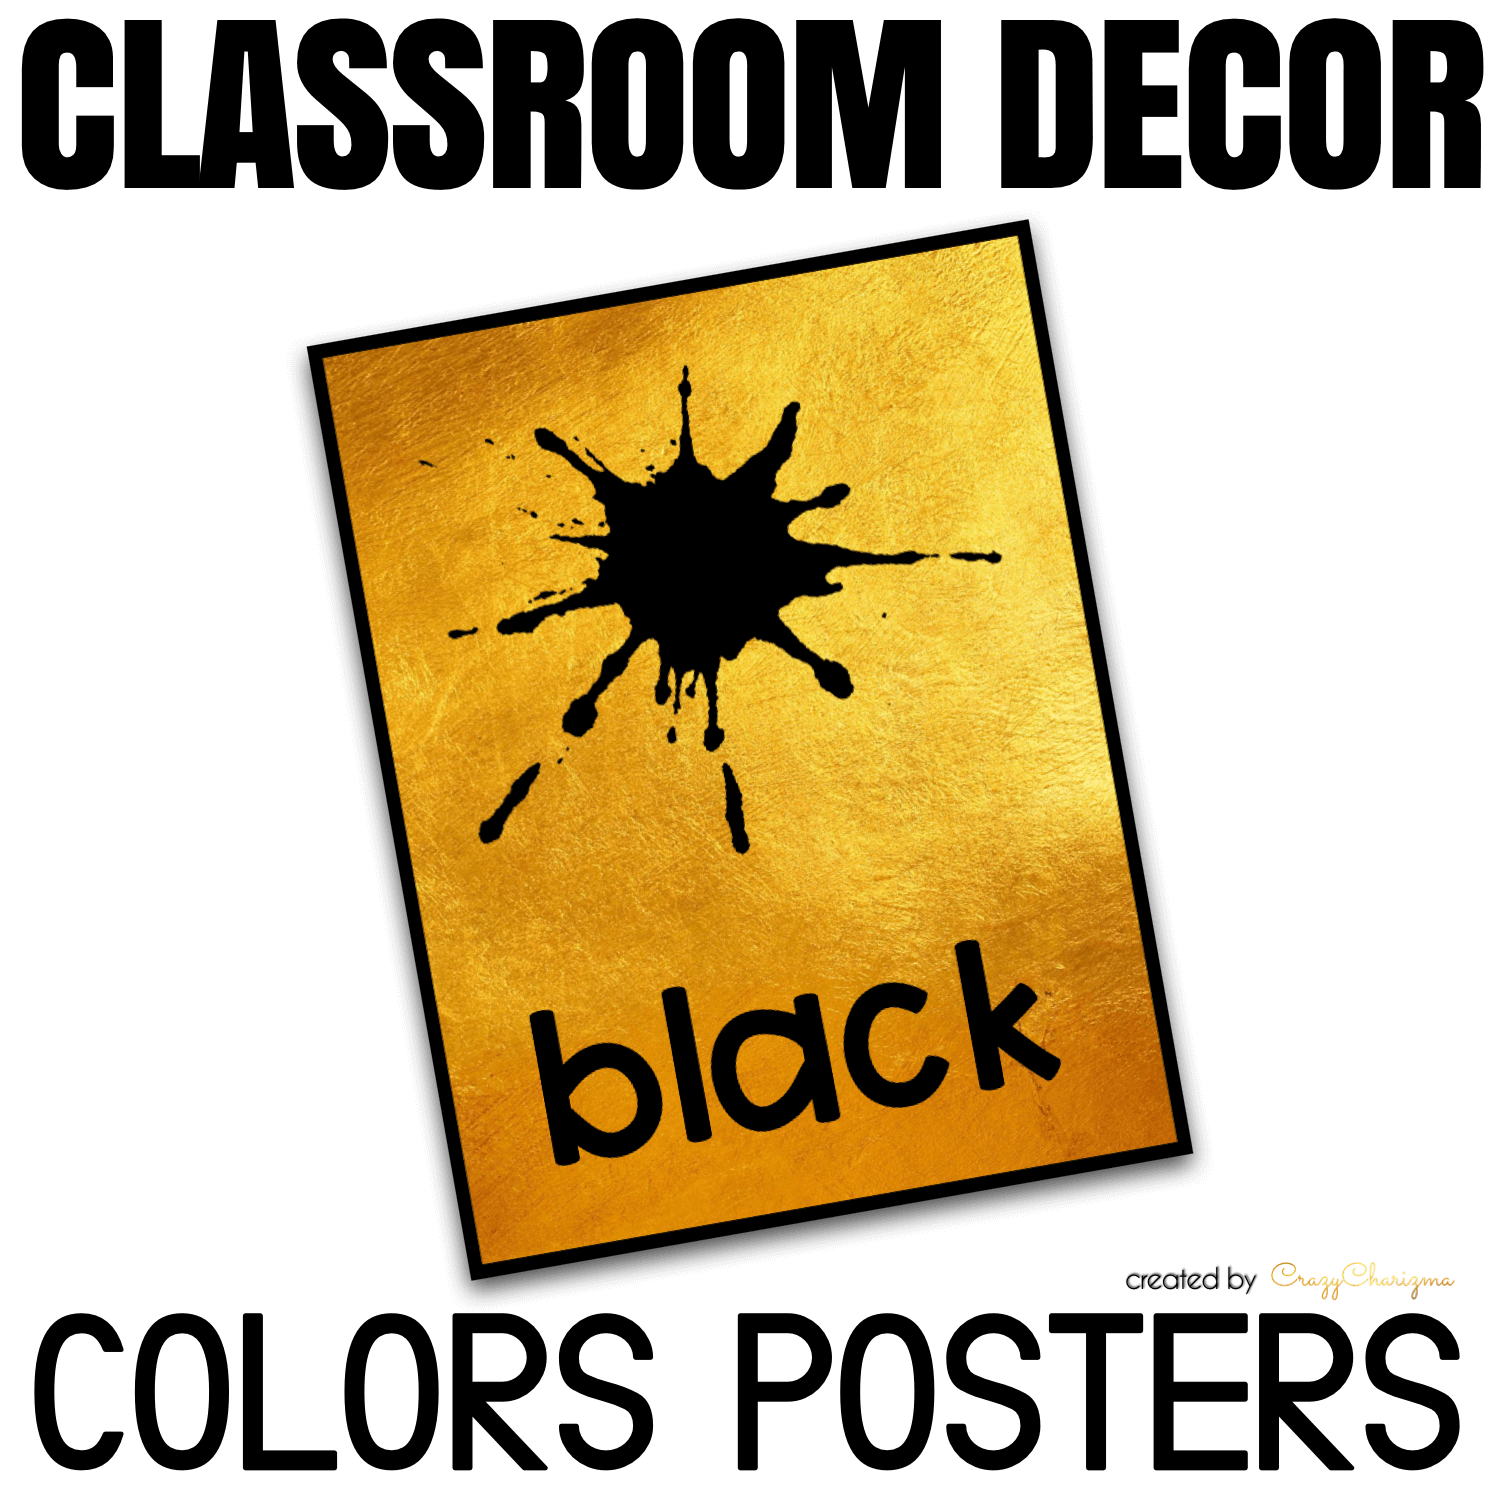 Looking for bright and clear colors posters? Spice your classroom with this visually appealing classroom decor!